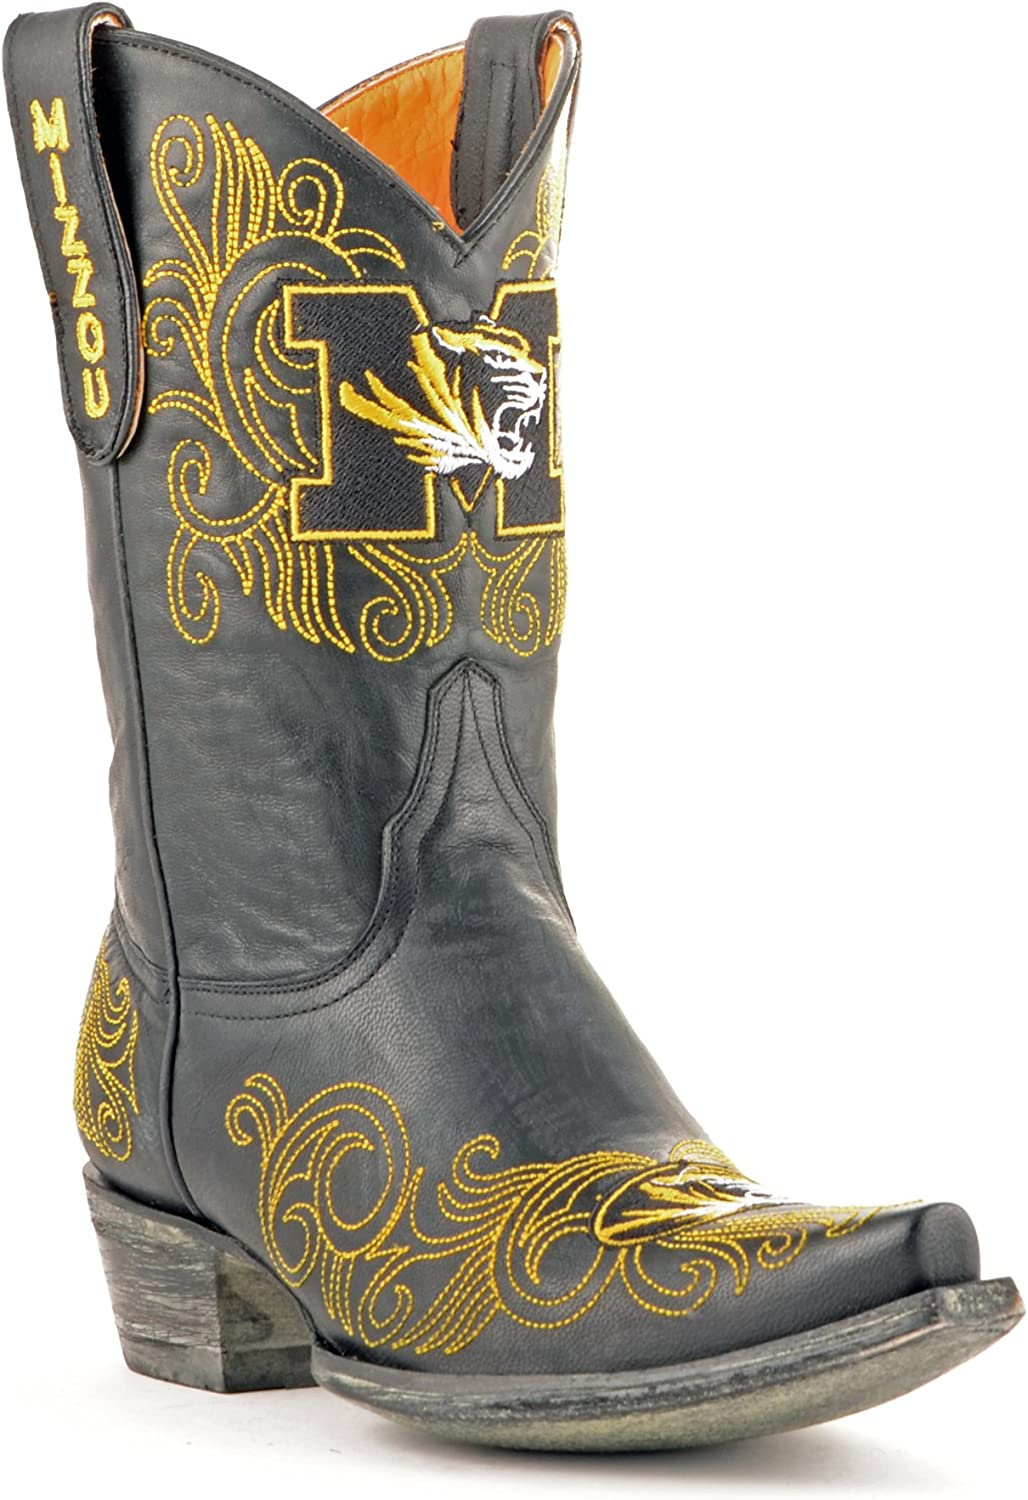 NCAA kvinnor Ladies 10 tum University of Missouri Gameday Boot Boot Boot  snabb frakt och bästa service